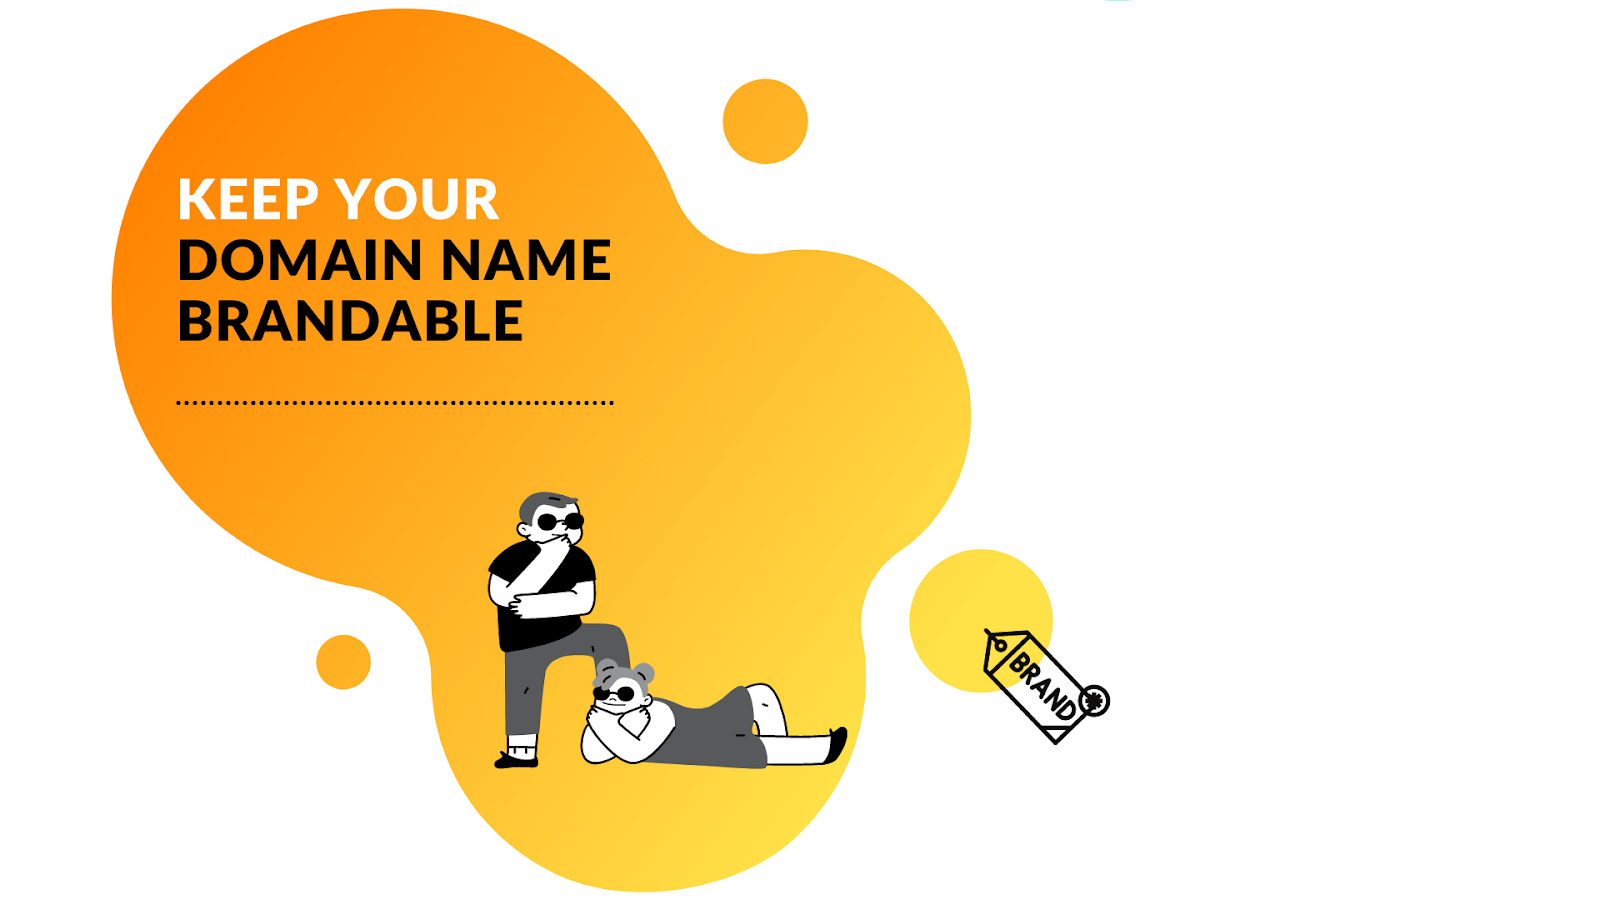 Make sure your new domain name for your business is brandable